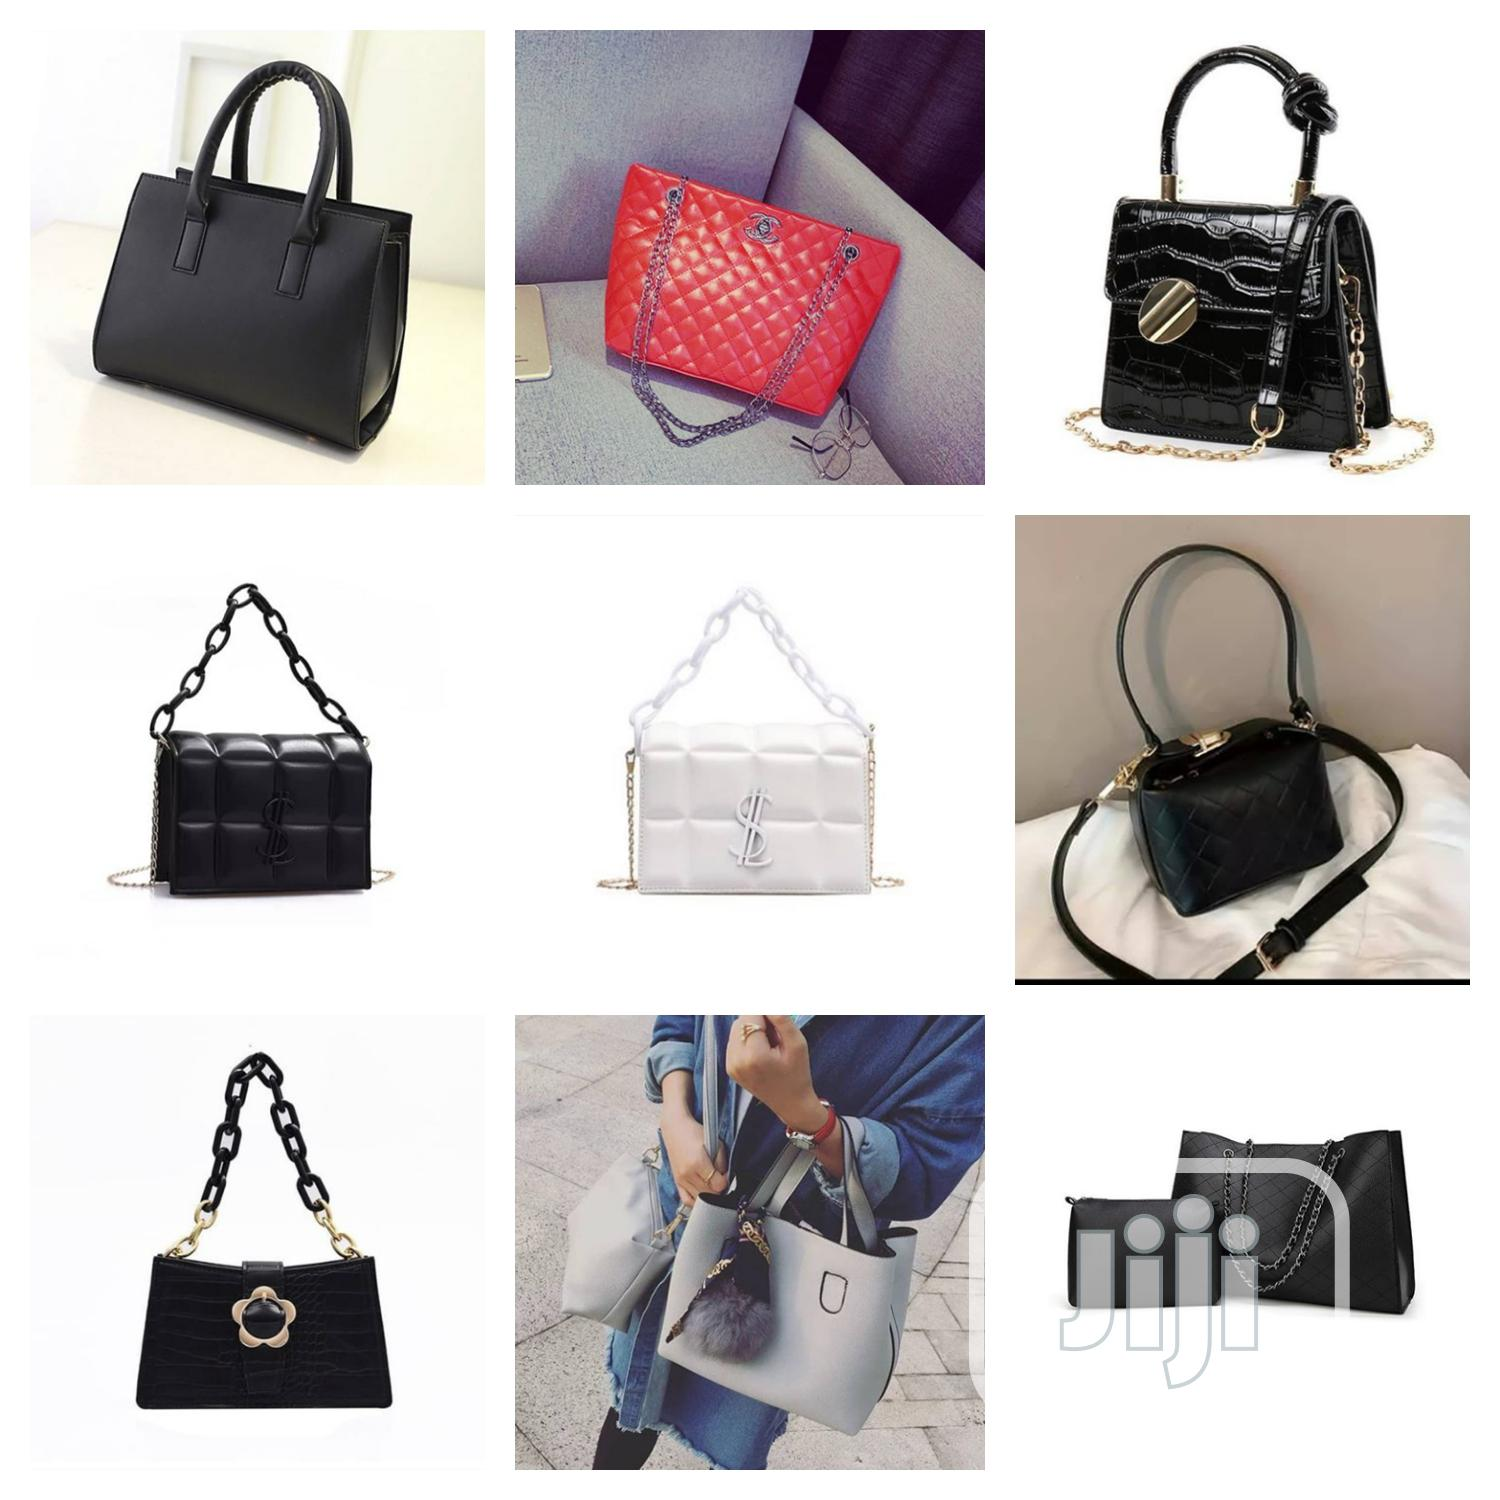 Archive: Lovely Bags Available for Pickup and Delivery in Asaba